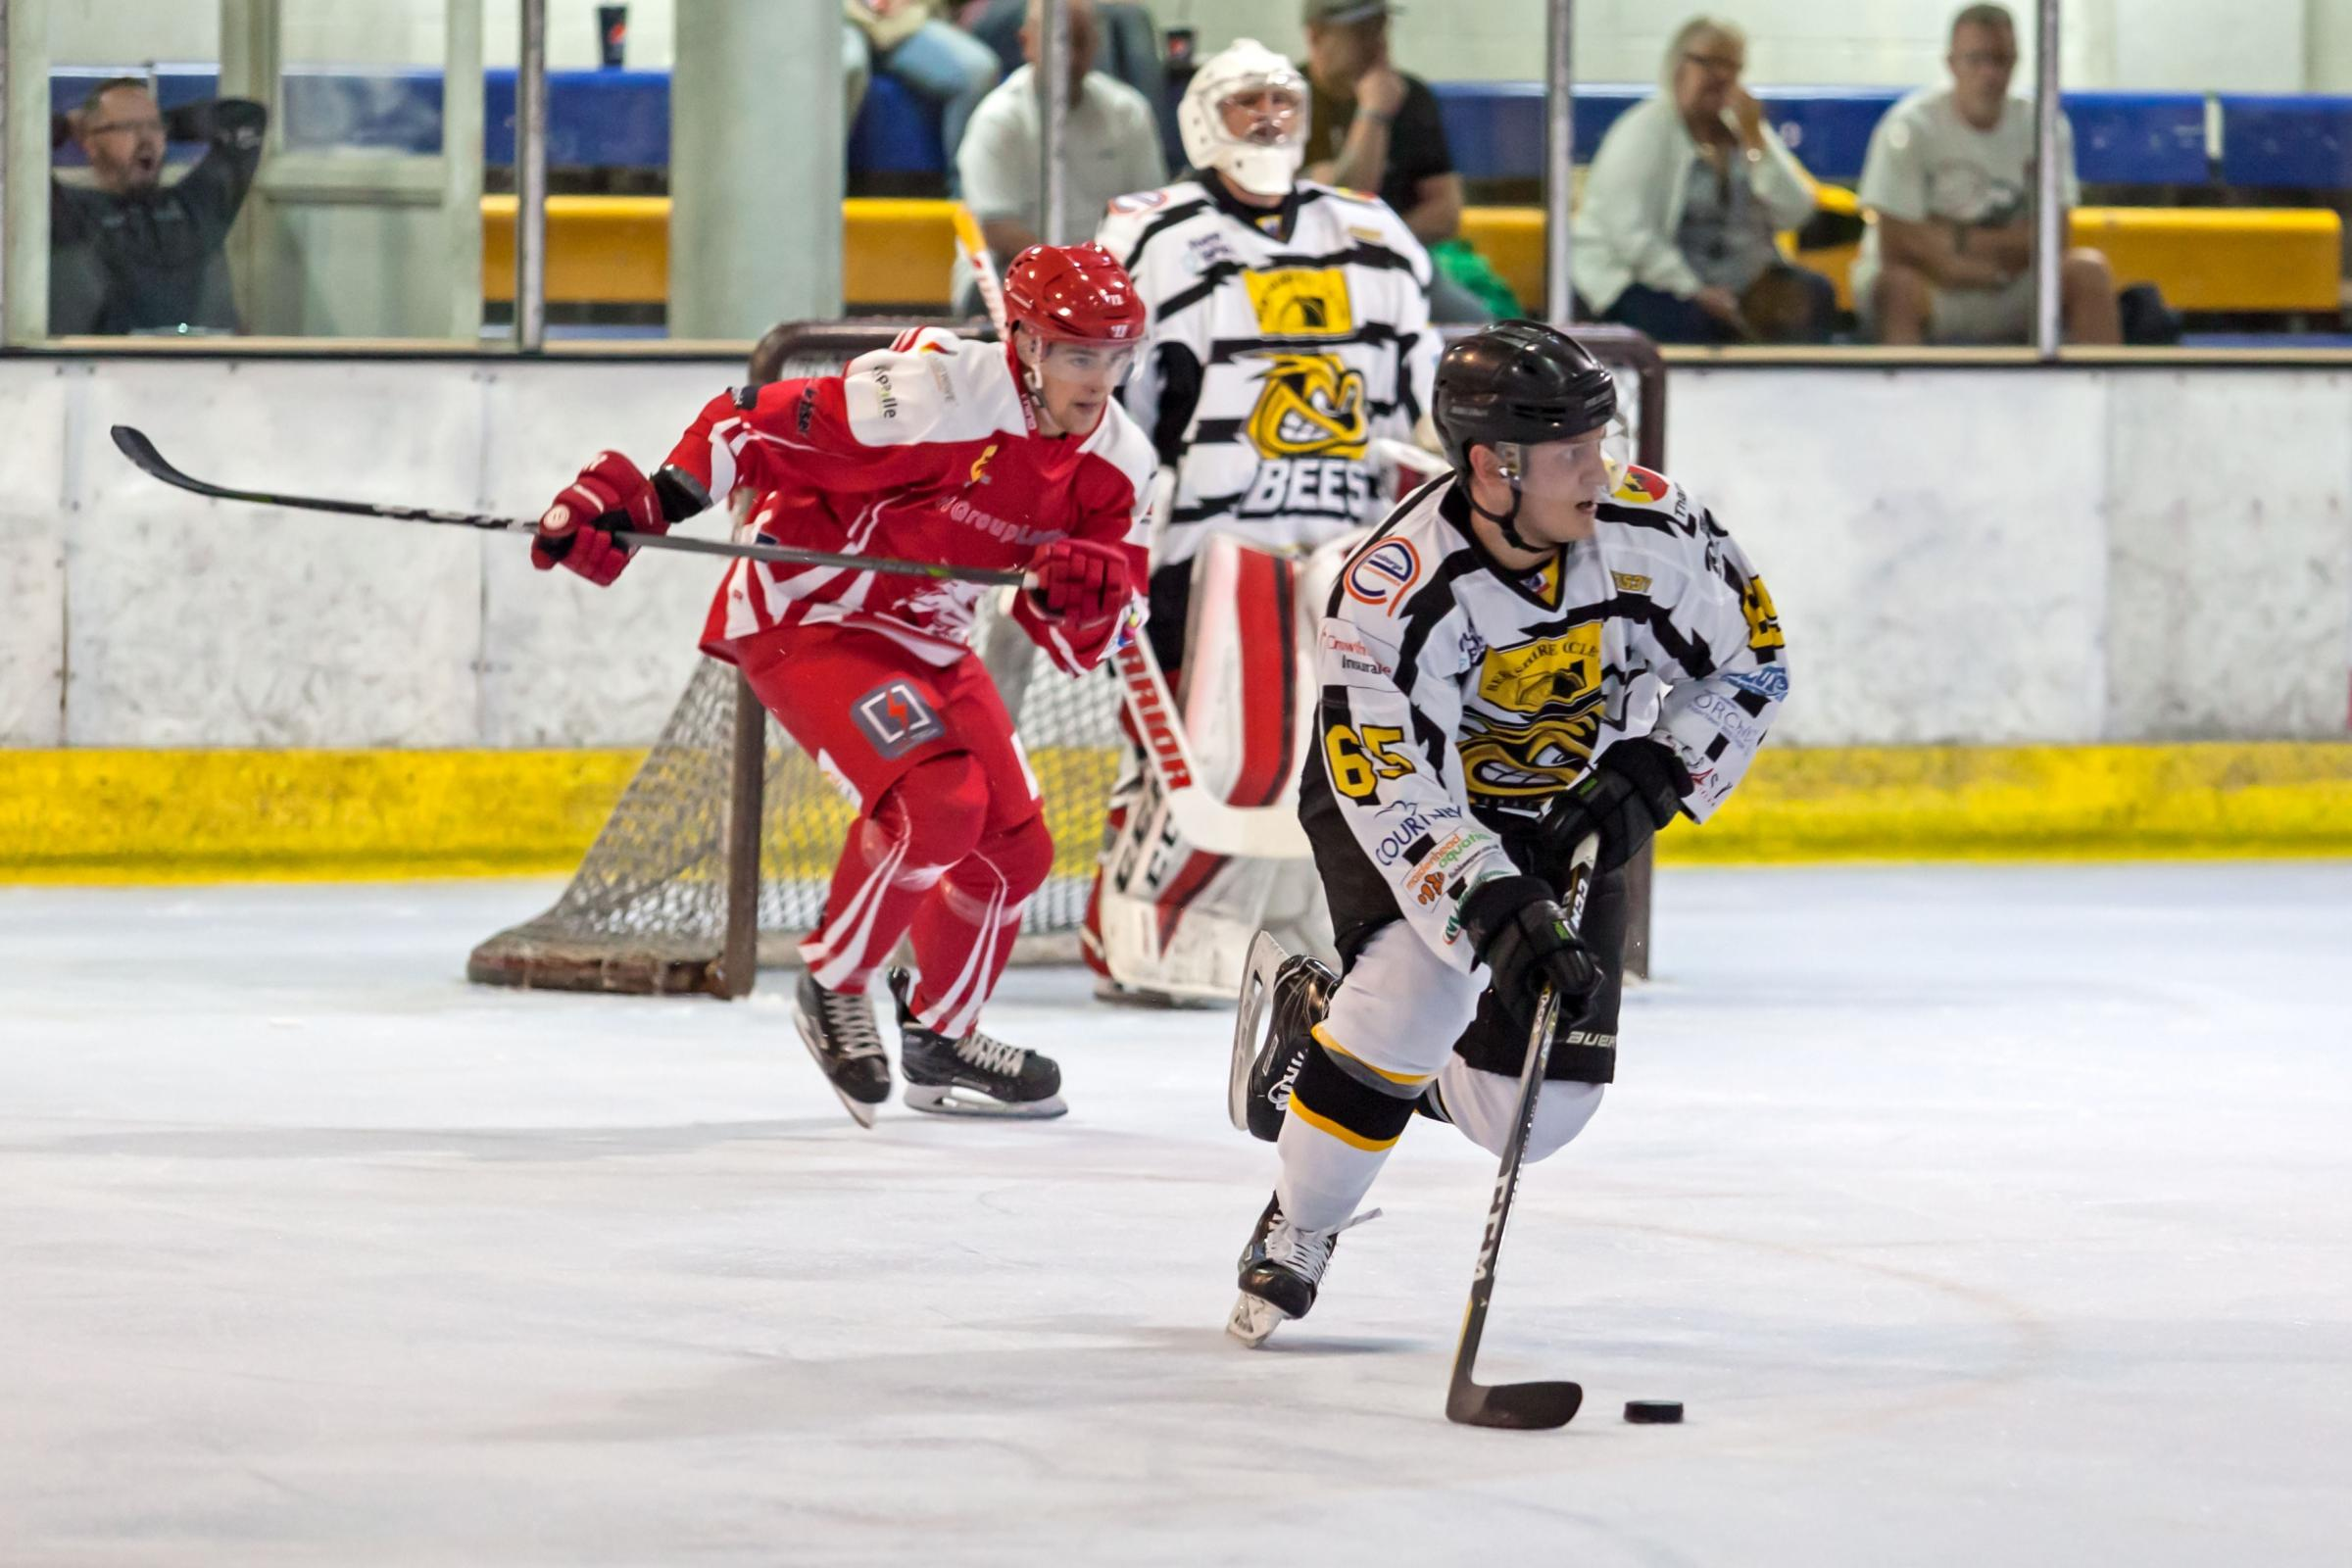 Bracknell Bees (white/black) lost to Swindon Wildcats home and away    Pictures by Kevin Slyfield